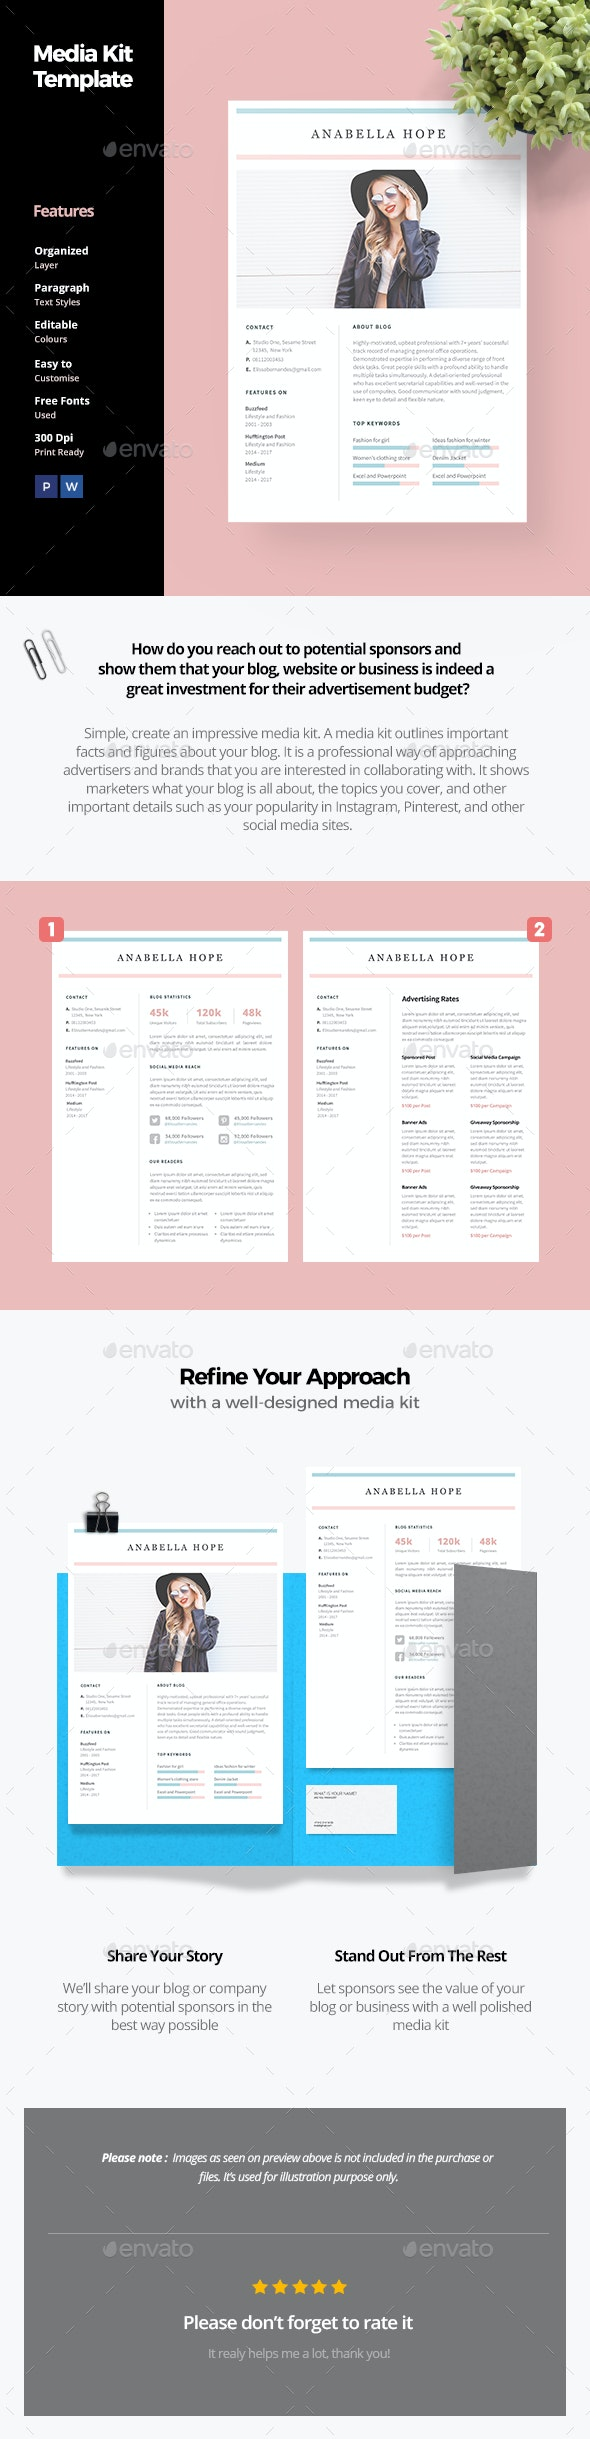 Media Kit Template - Proposals & Invoices Stationery